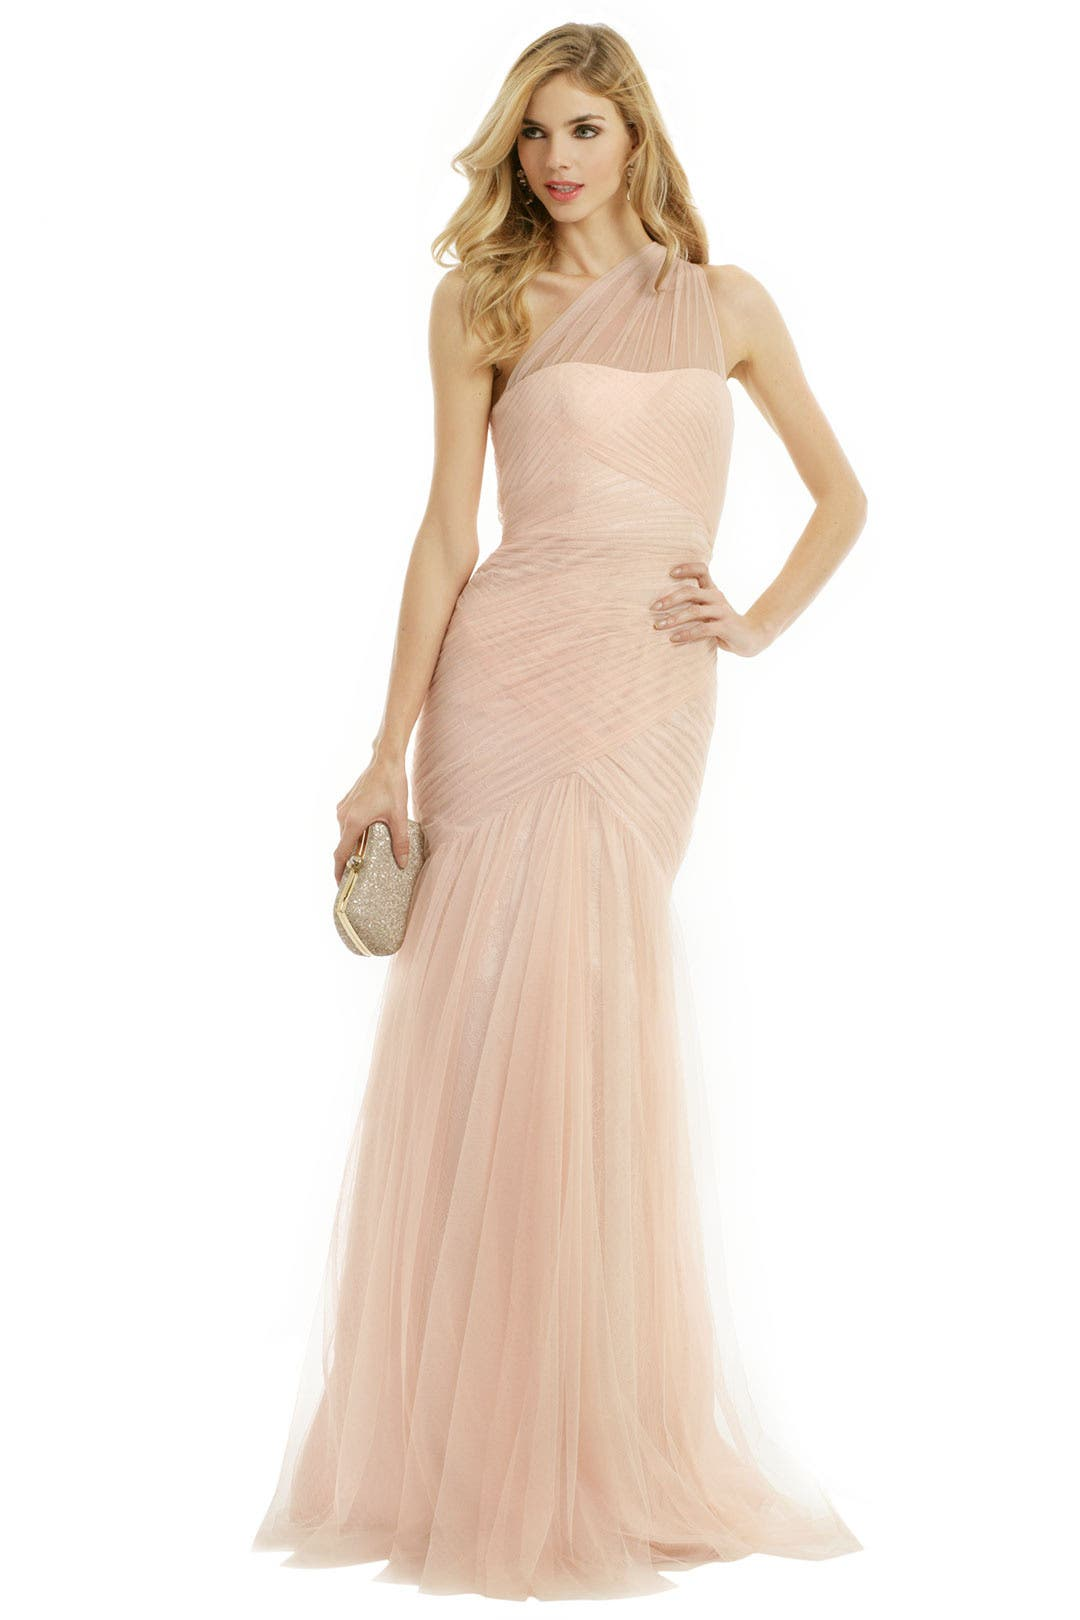 Fallen Rose Petal Gown By Ml Monique Lhuillier For 87